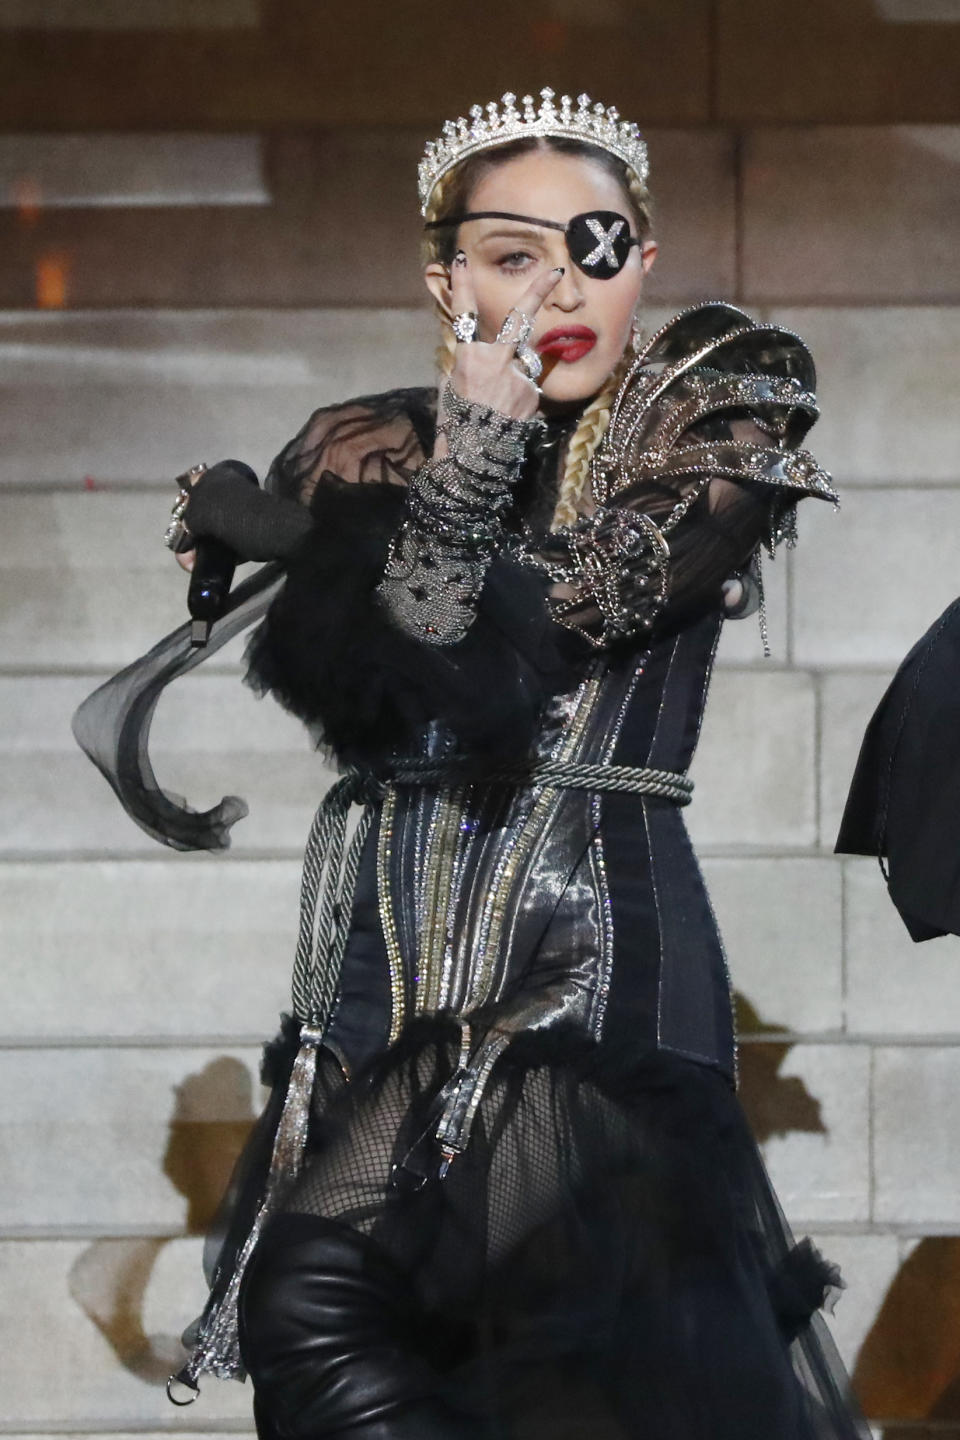 Madonna, performs live on stage after the 64th annual Eurovision Song Contest held at Tel Aviv Fairgrounds on May 18, 2019 in Tel Aviv, Israel. (Photo by Michael Campanella/Getty Images)